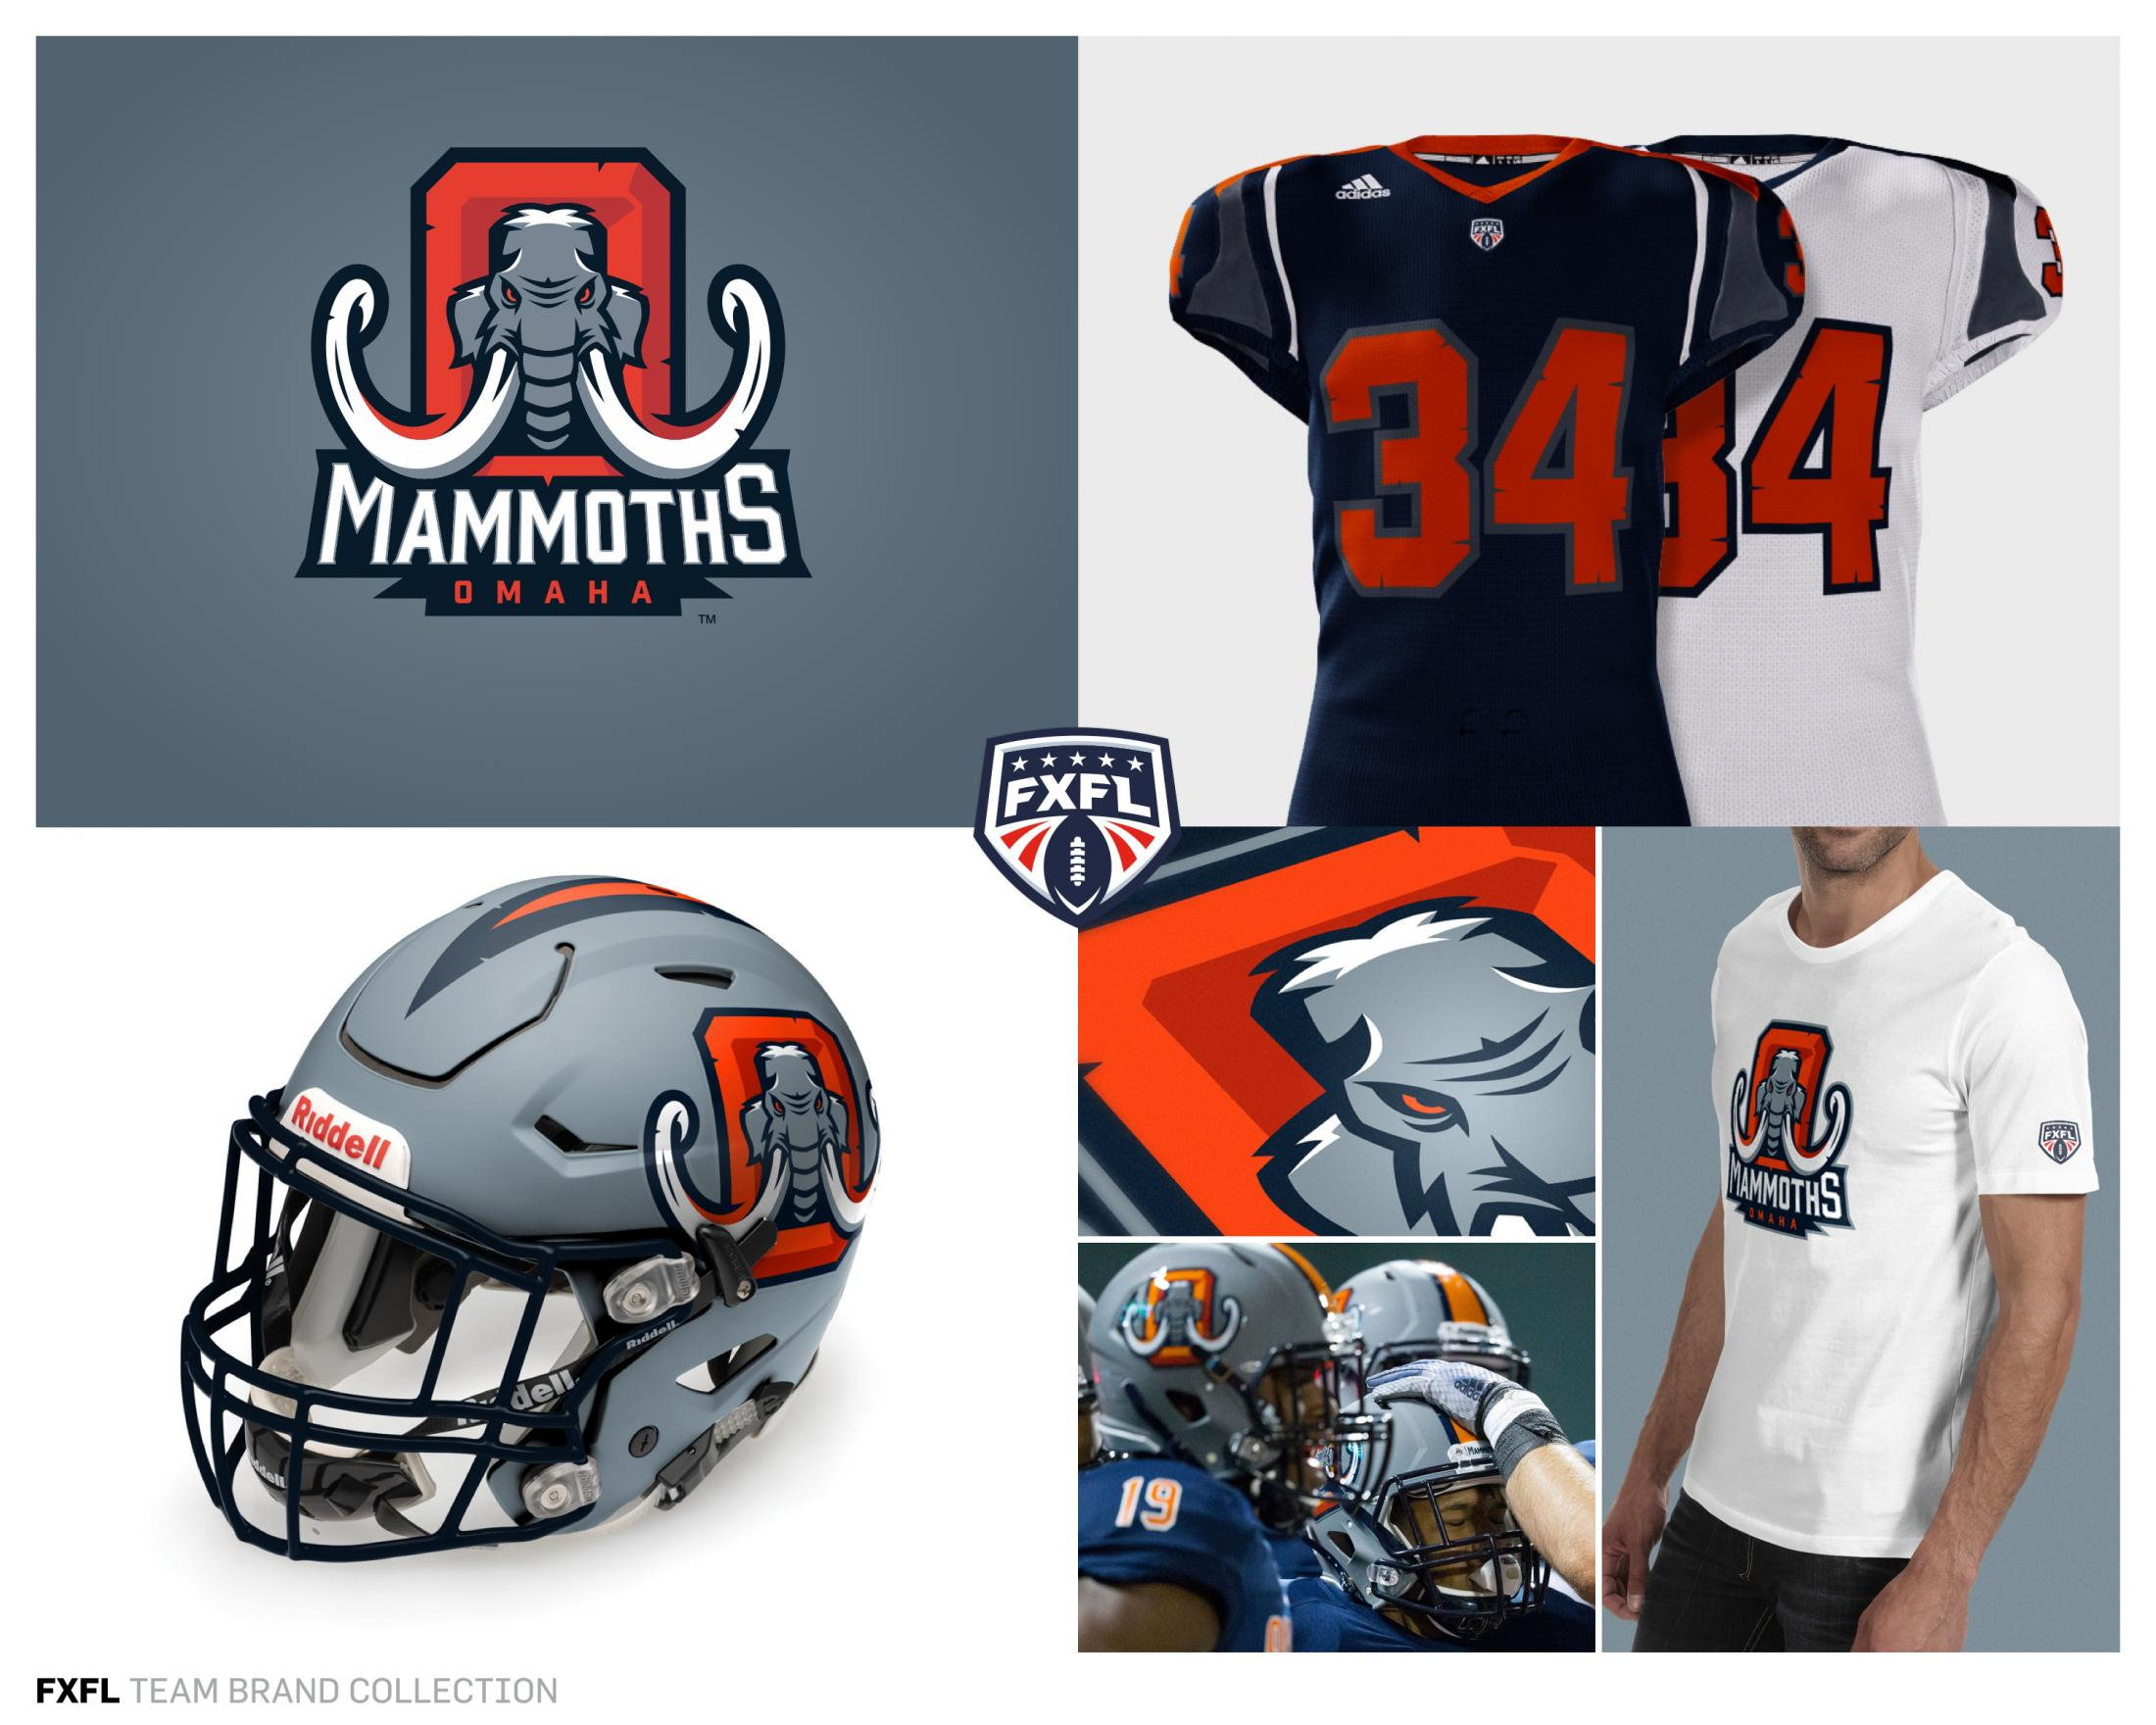 Thumbnail for FXFL League and Team Brand Identities